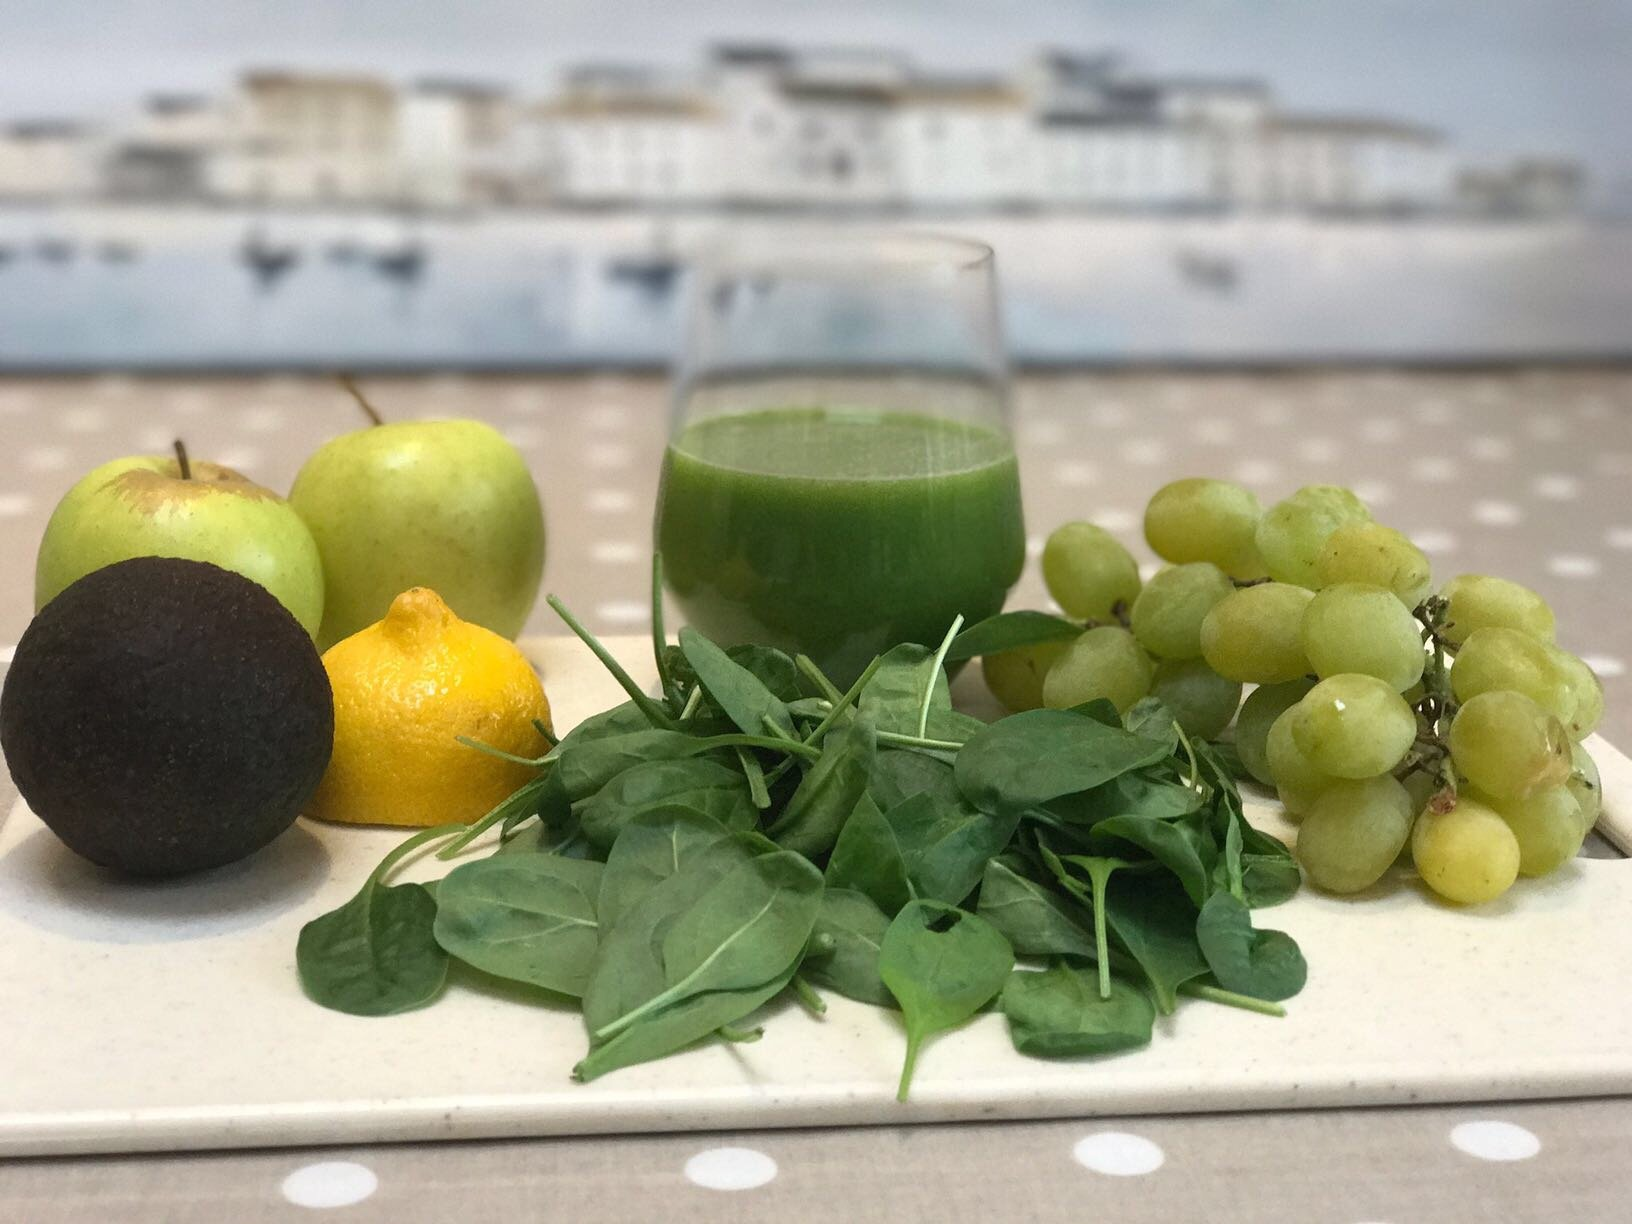 Do You Really Need a Juicer for Fresh Juice?